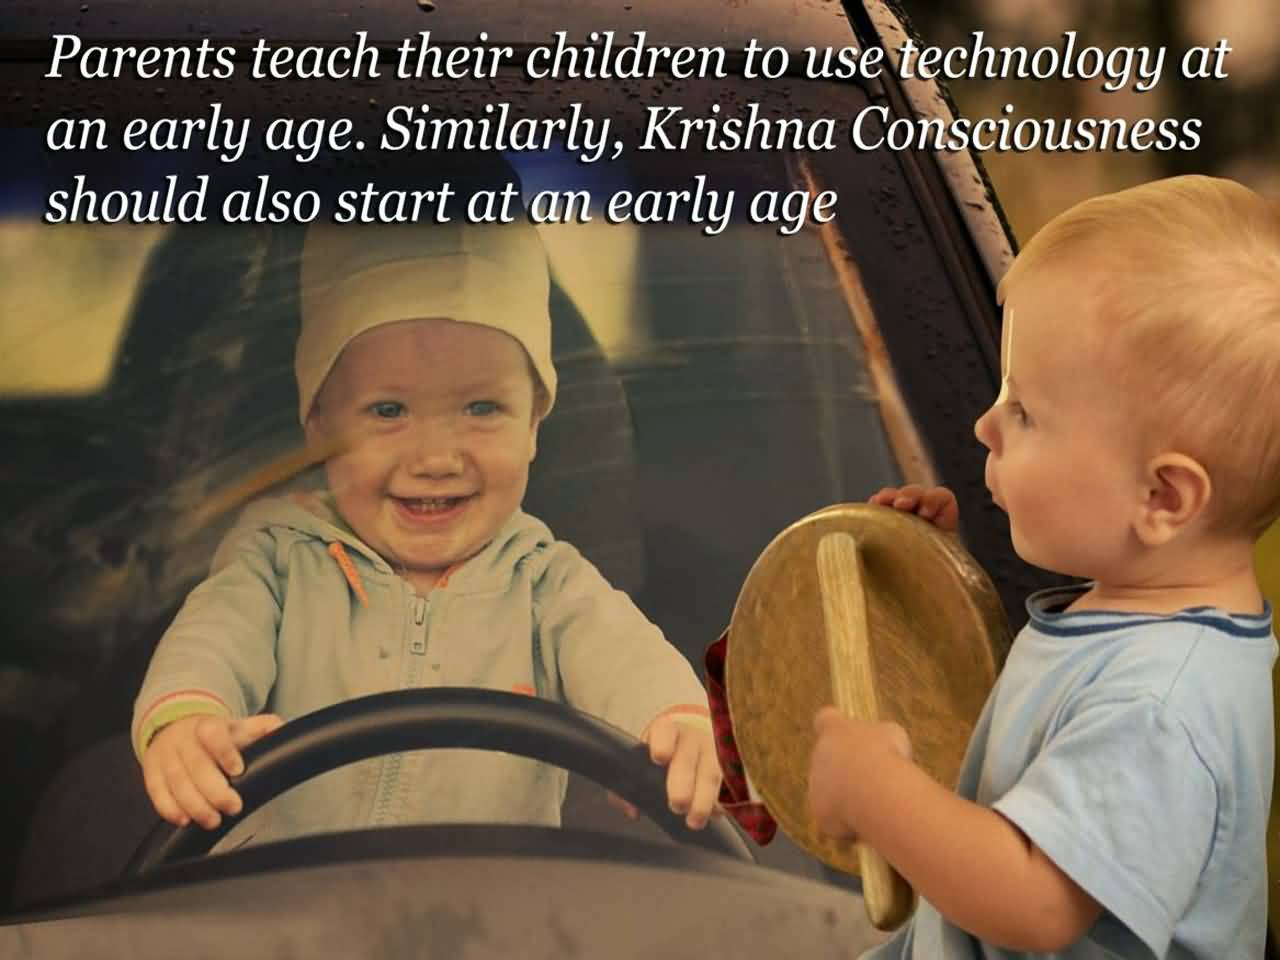 Technology Quotes parents teach their children to use technology at an early age...